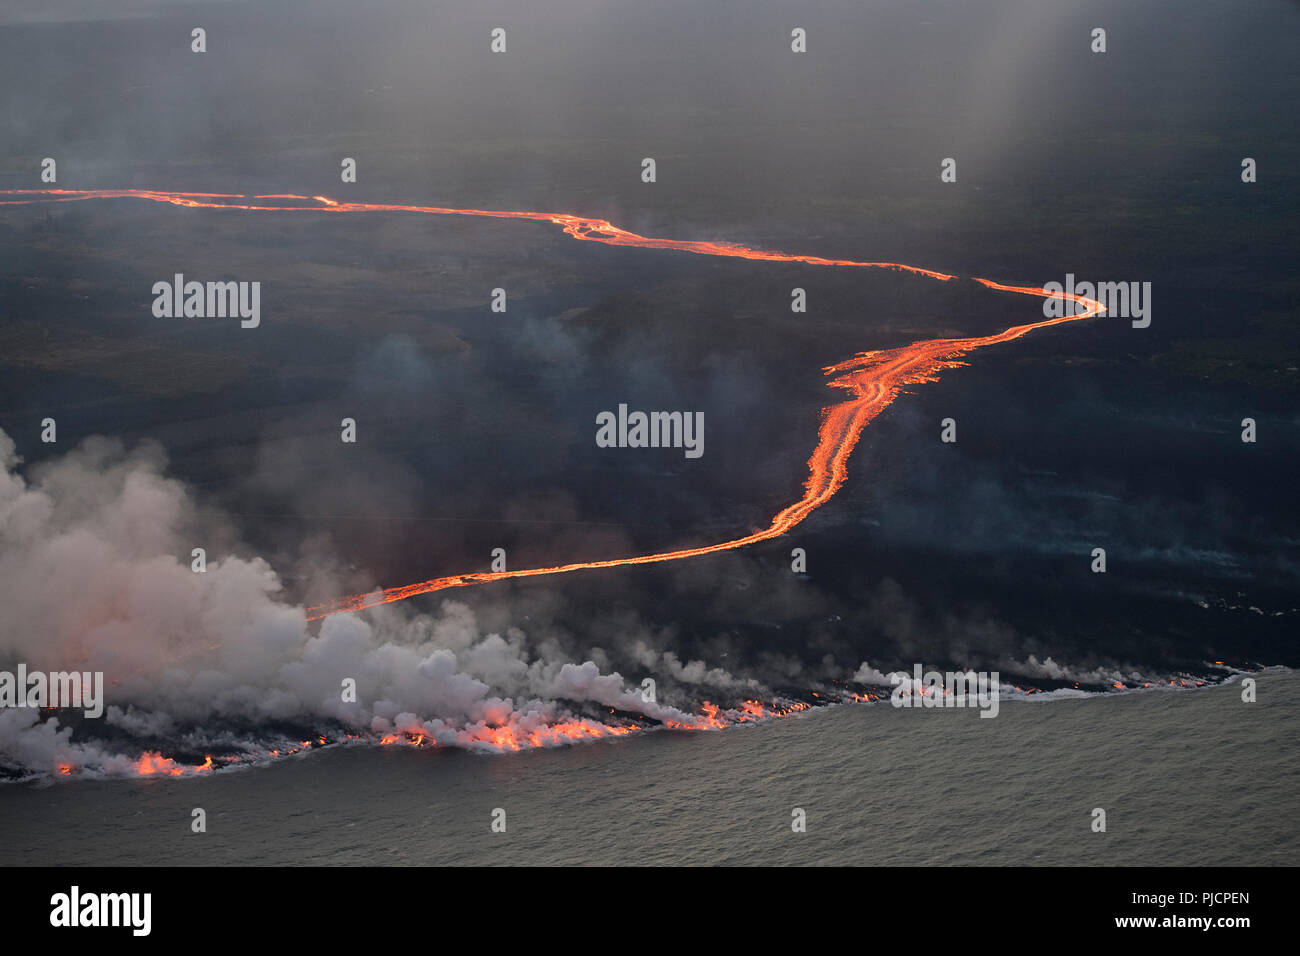 lava erupted from fissure 8 of Kilauea Volcano east rift zone near Pahoa, Hawaii flows as a glowing river through Kapoho to enter the Pacific Ocean. - Stock Image